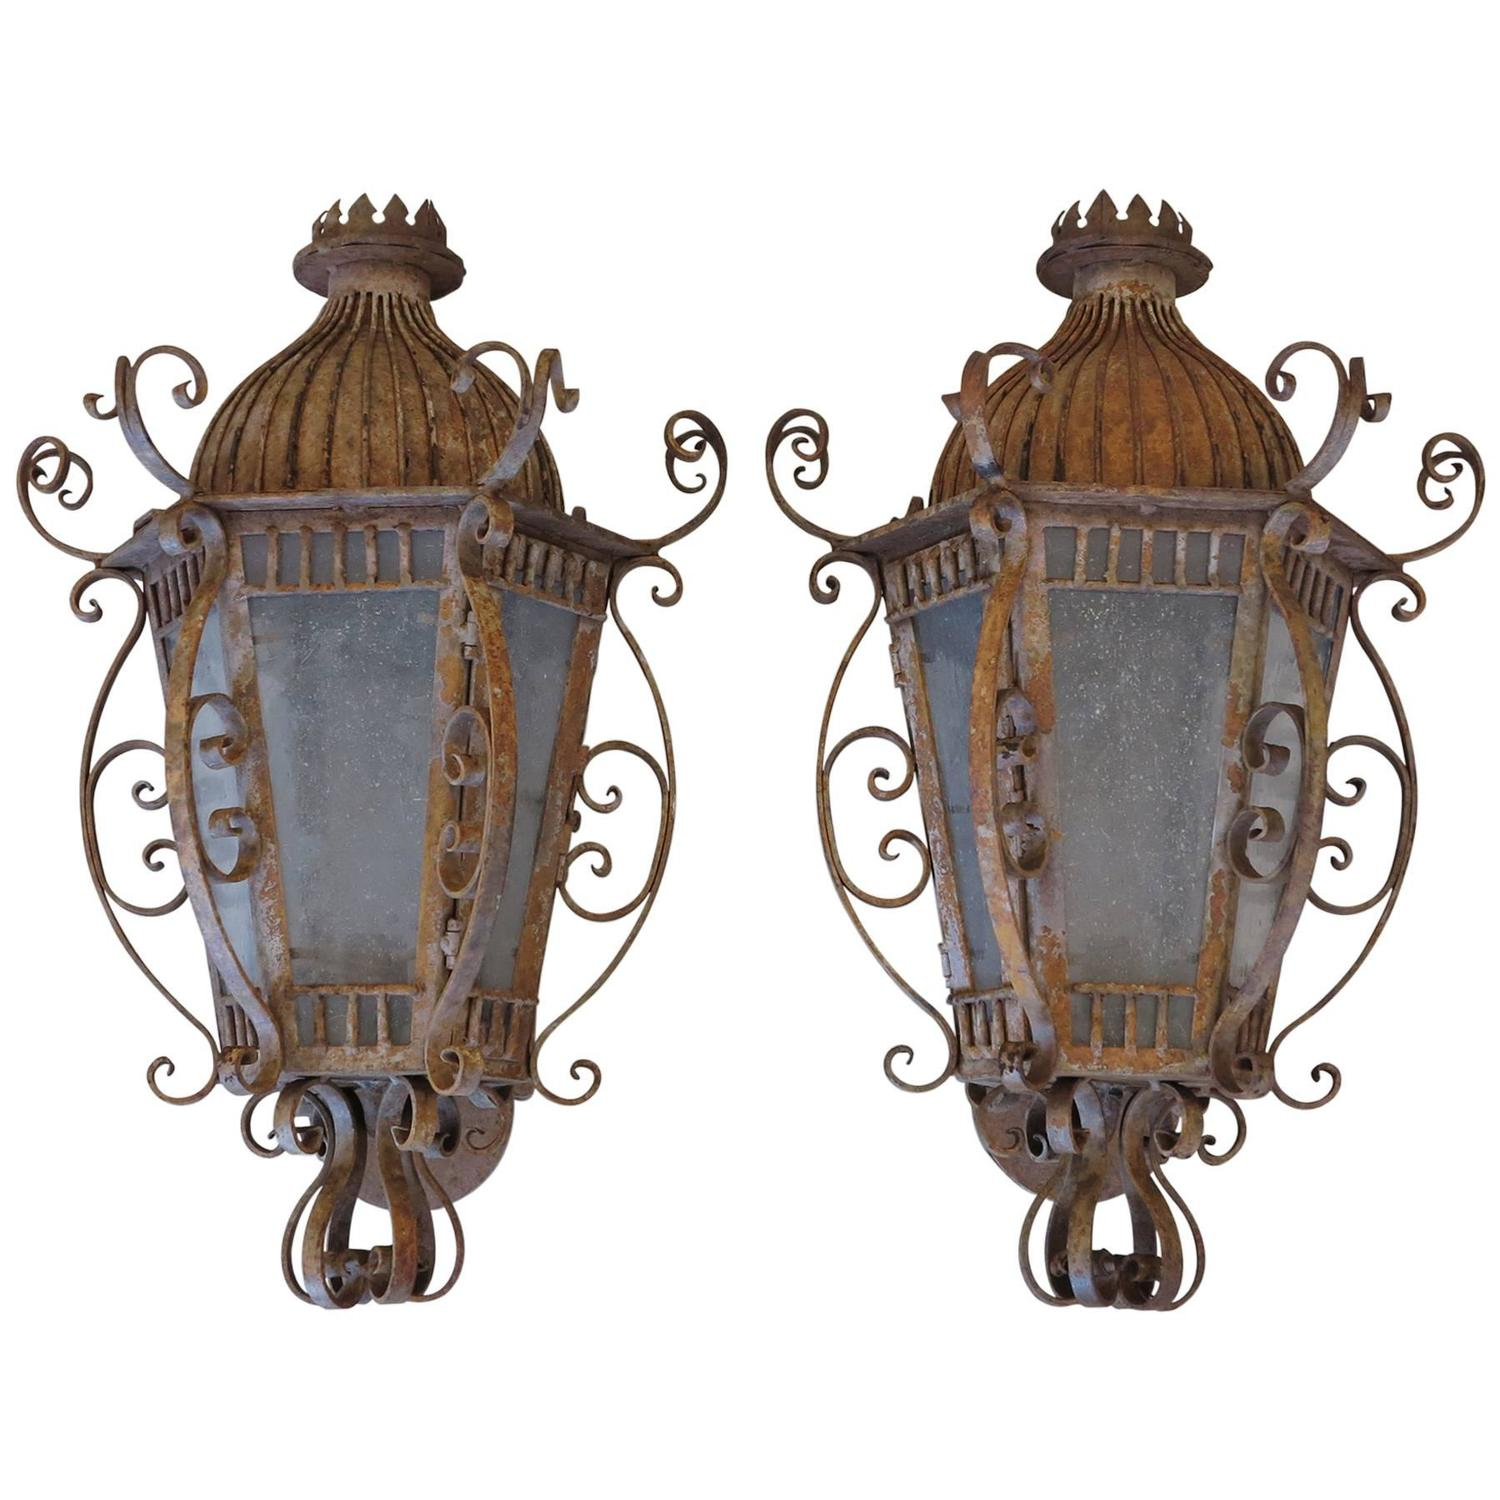 Wall Sconces Iron : Wrought Iron Outdoor Wall Sconces at 1stdibs